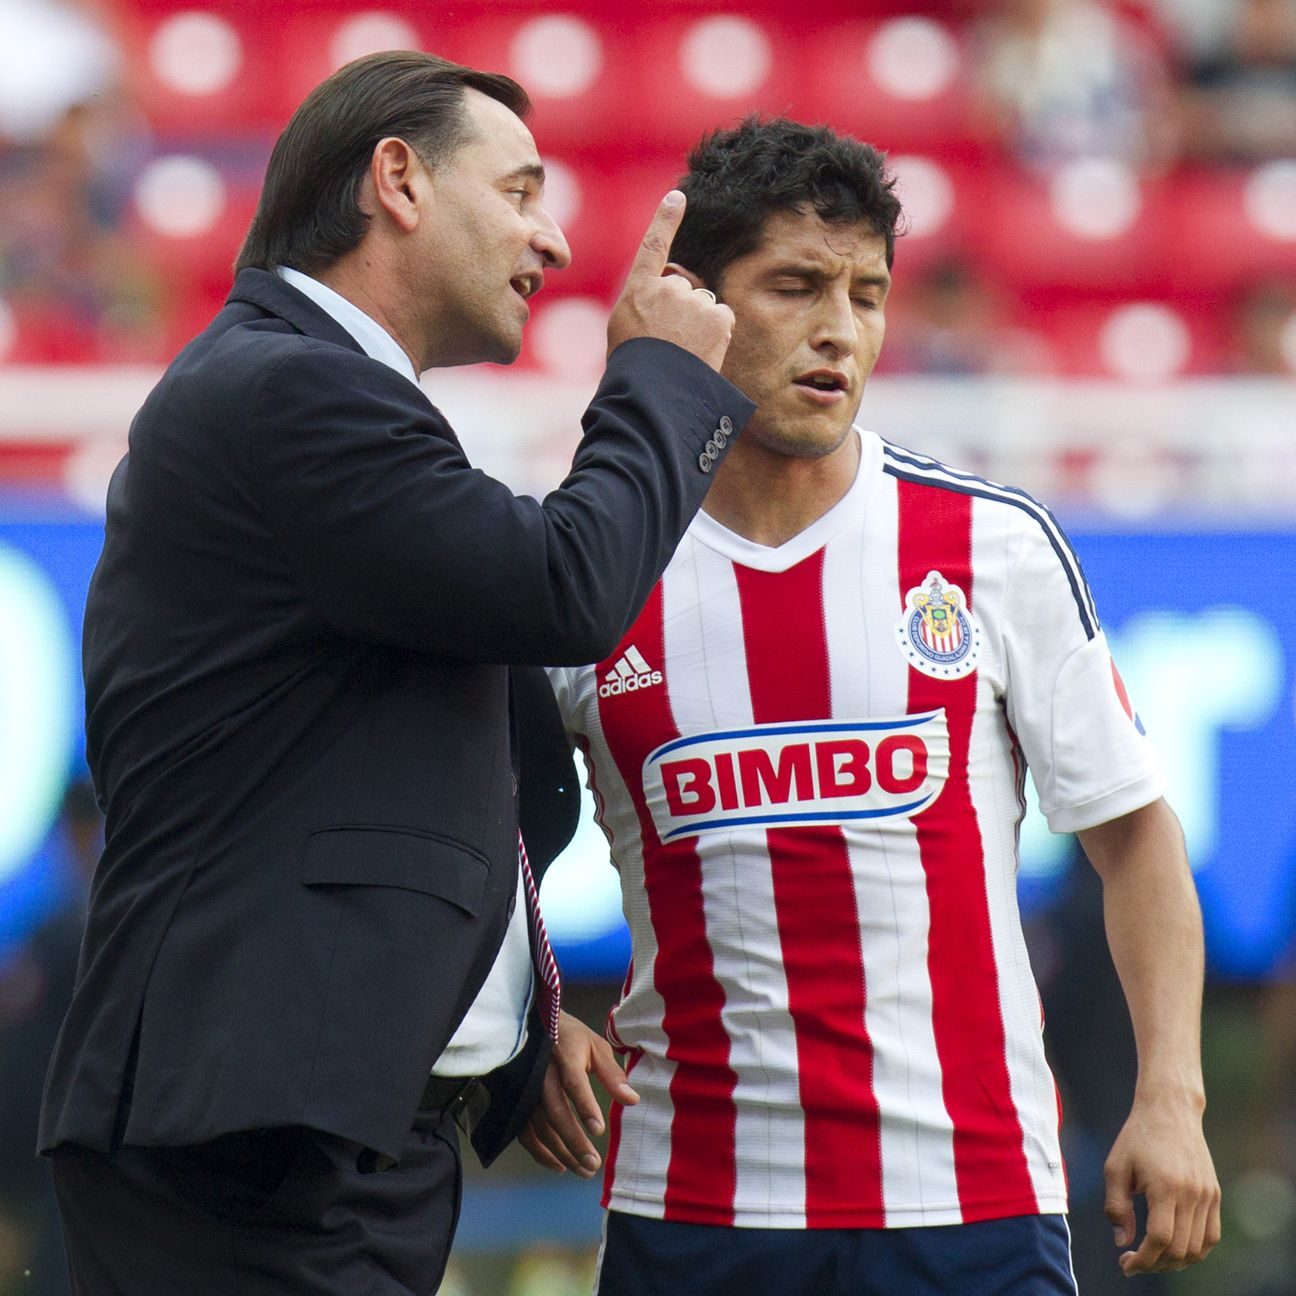 Carlos Bustos' message just doesn't seem to be getting through to Angel Reyna and the rest of the Chivas players.